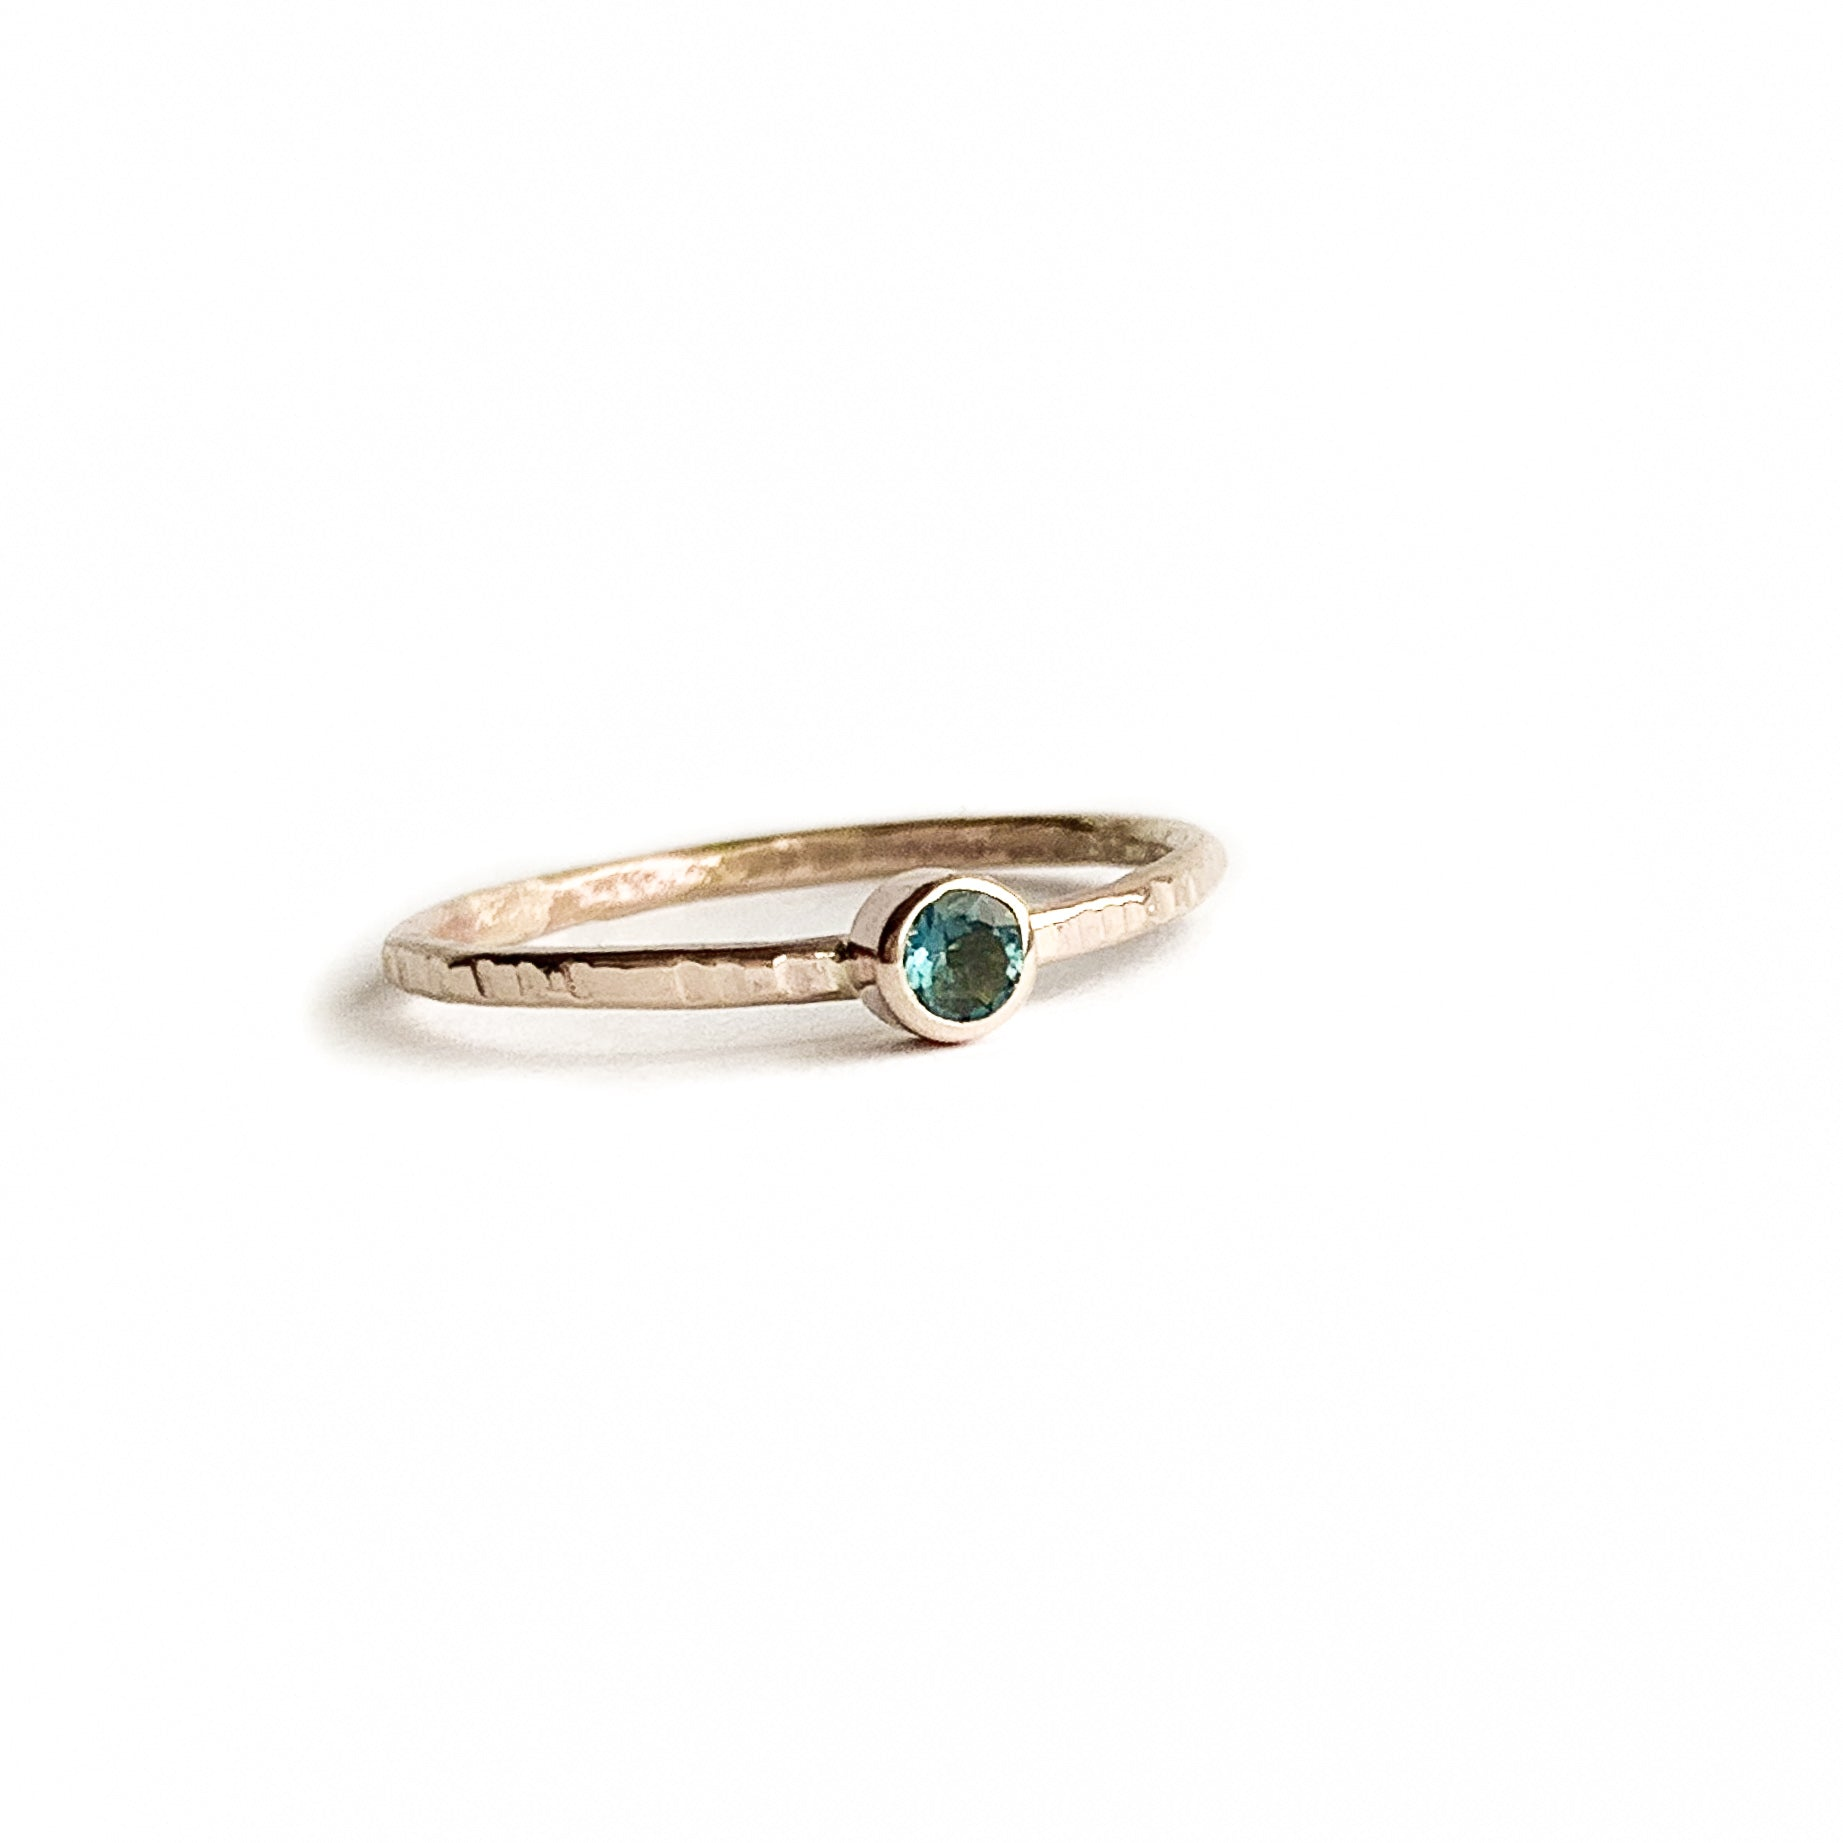 LONDON BLUE TOPAZ ring - Gold